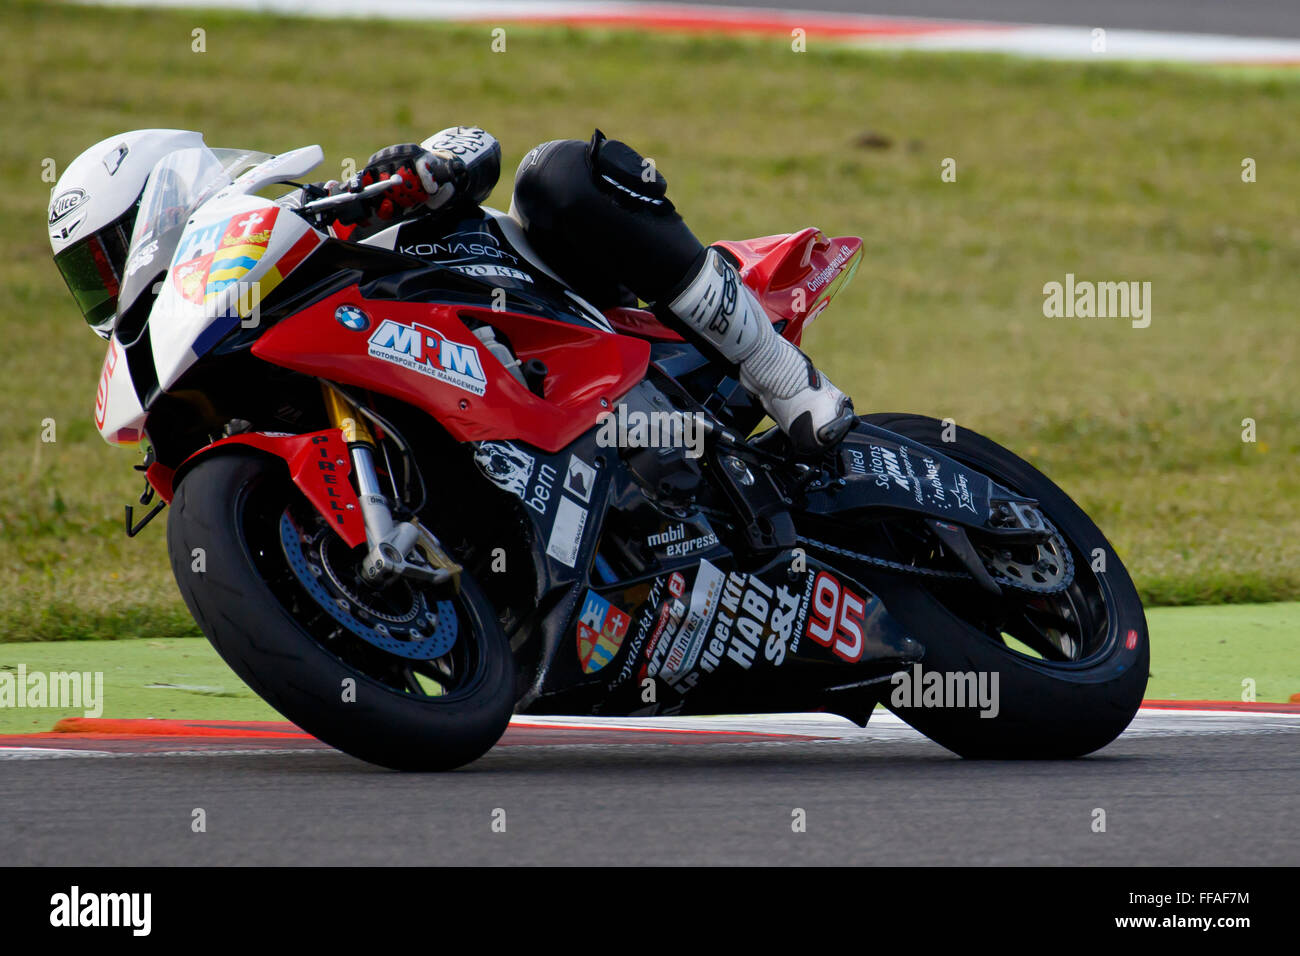 Misano Adriatico, Italy - June 20, 2015: BMW S1000 RR of Team ASPI, driven by MURESAN Robert Stock Photo